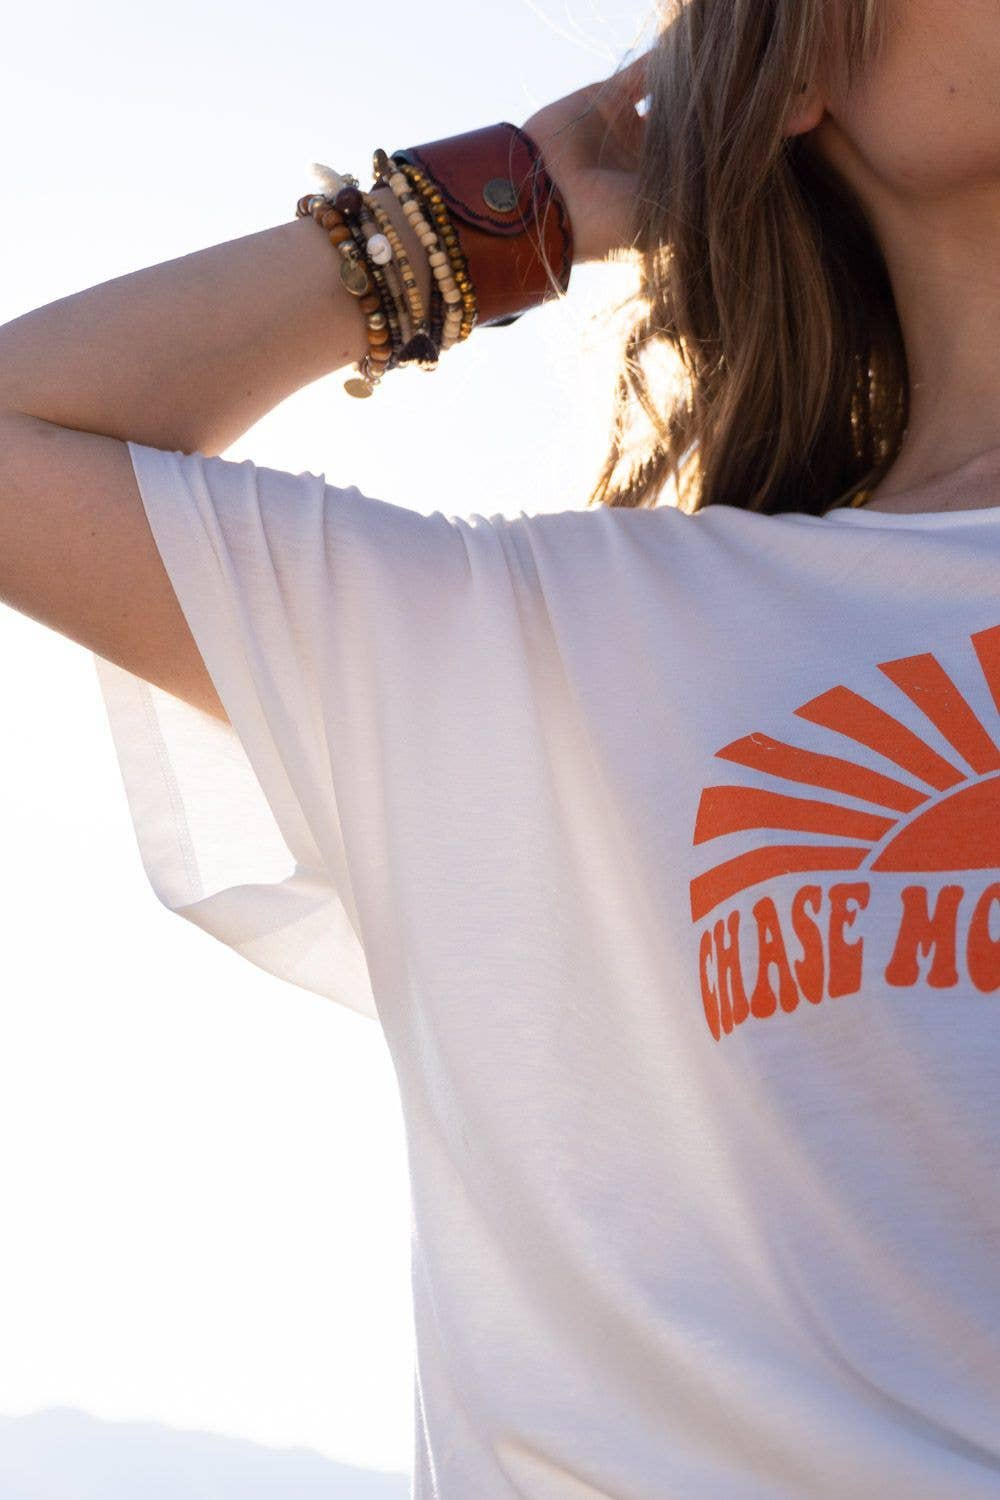 Chase More Sunsets Tee